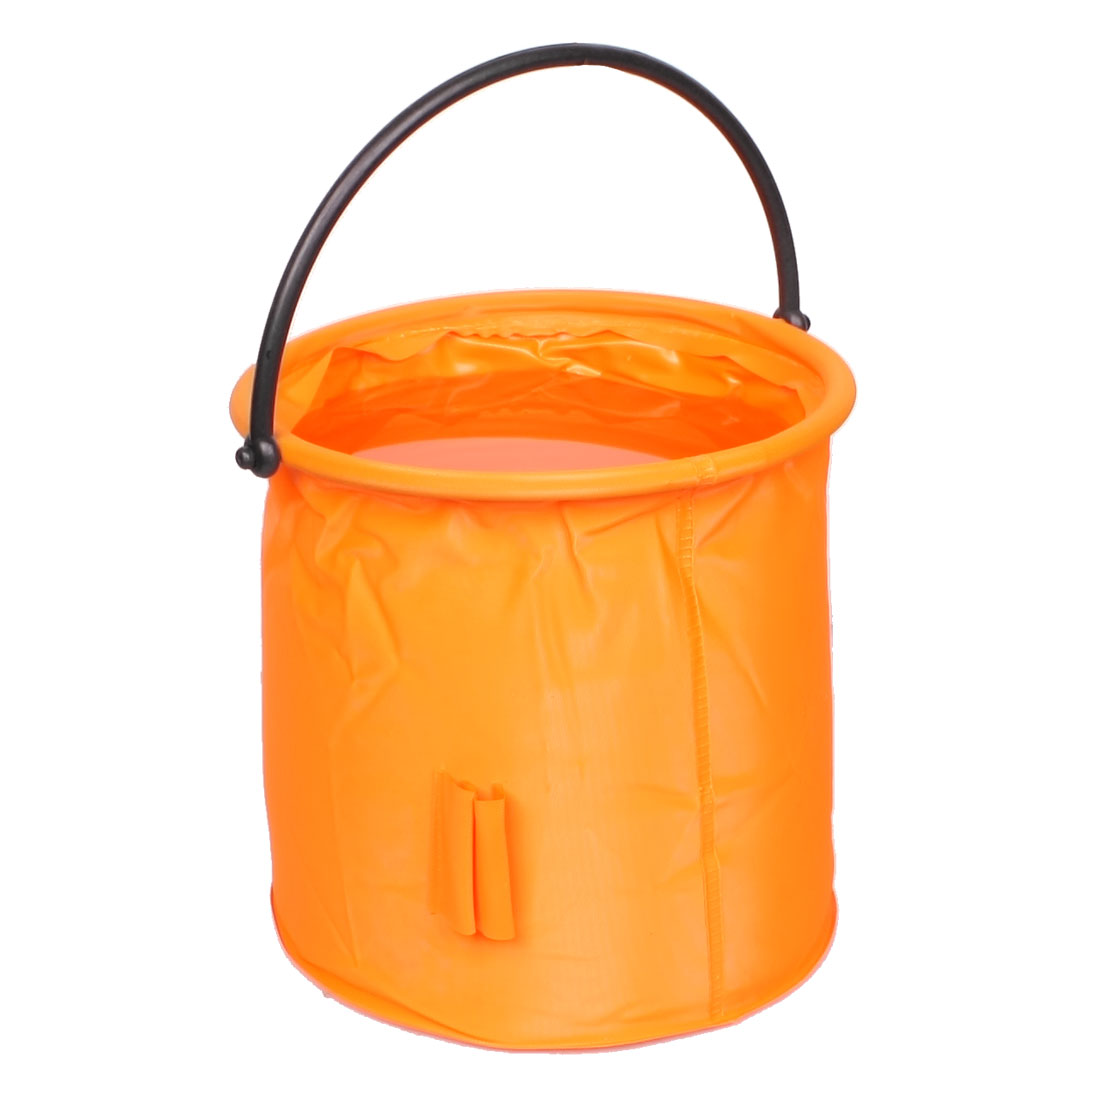 Black Handle Orange Folding Round Fish Pail Portable Water Bucket 4.5L